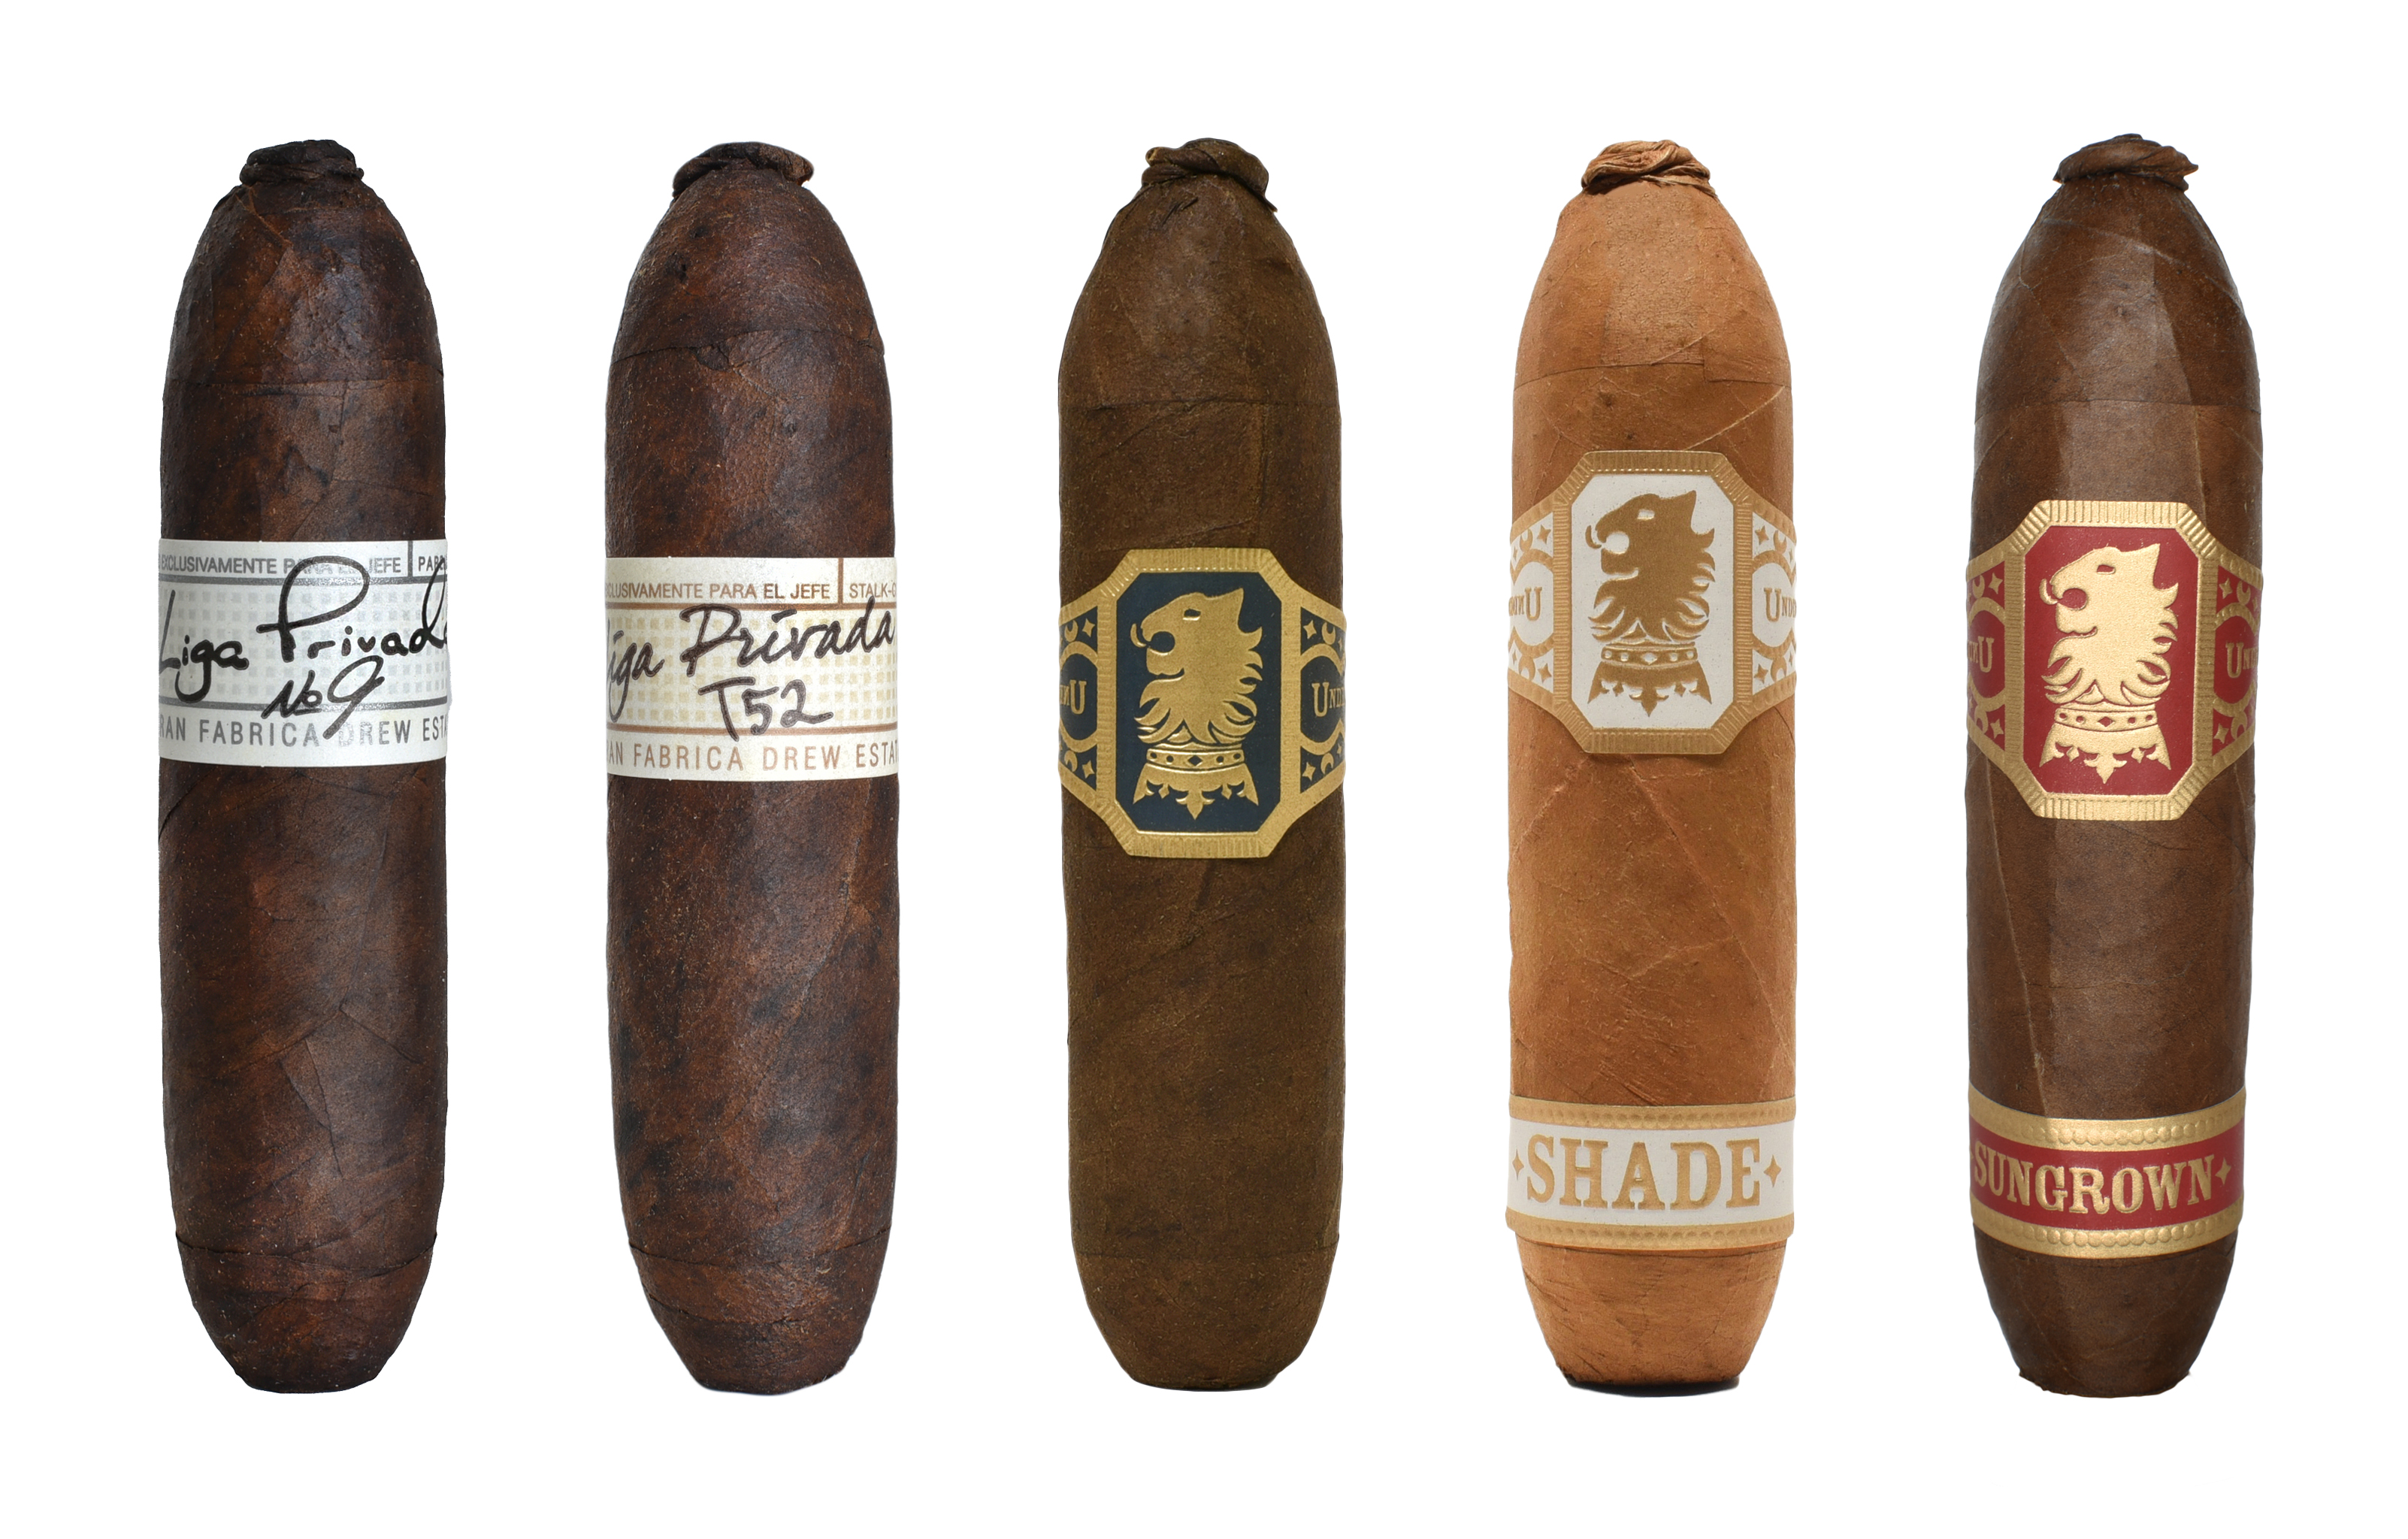 Cigar News: Drew Estate Releases New Batch of Five Flying Pigs